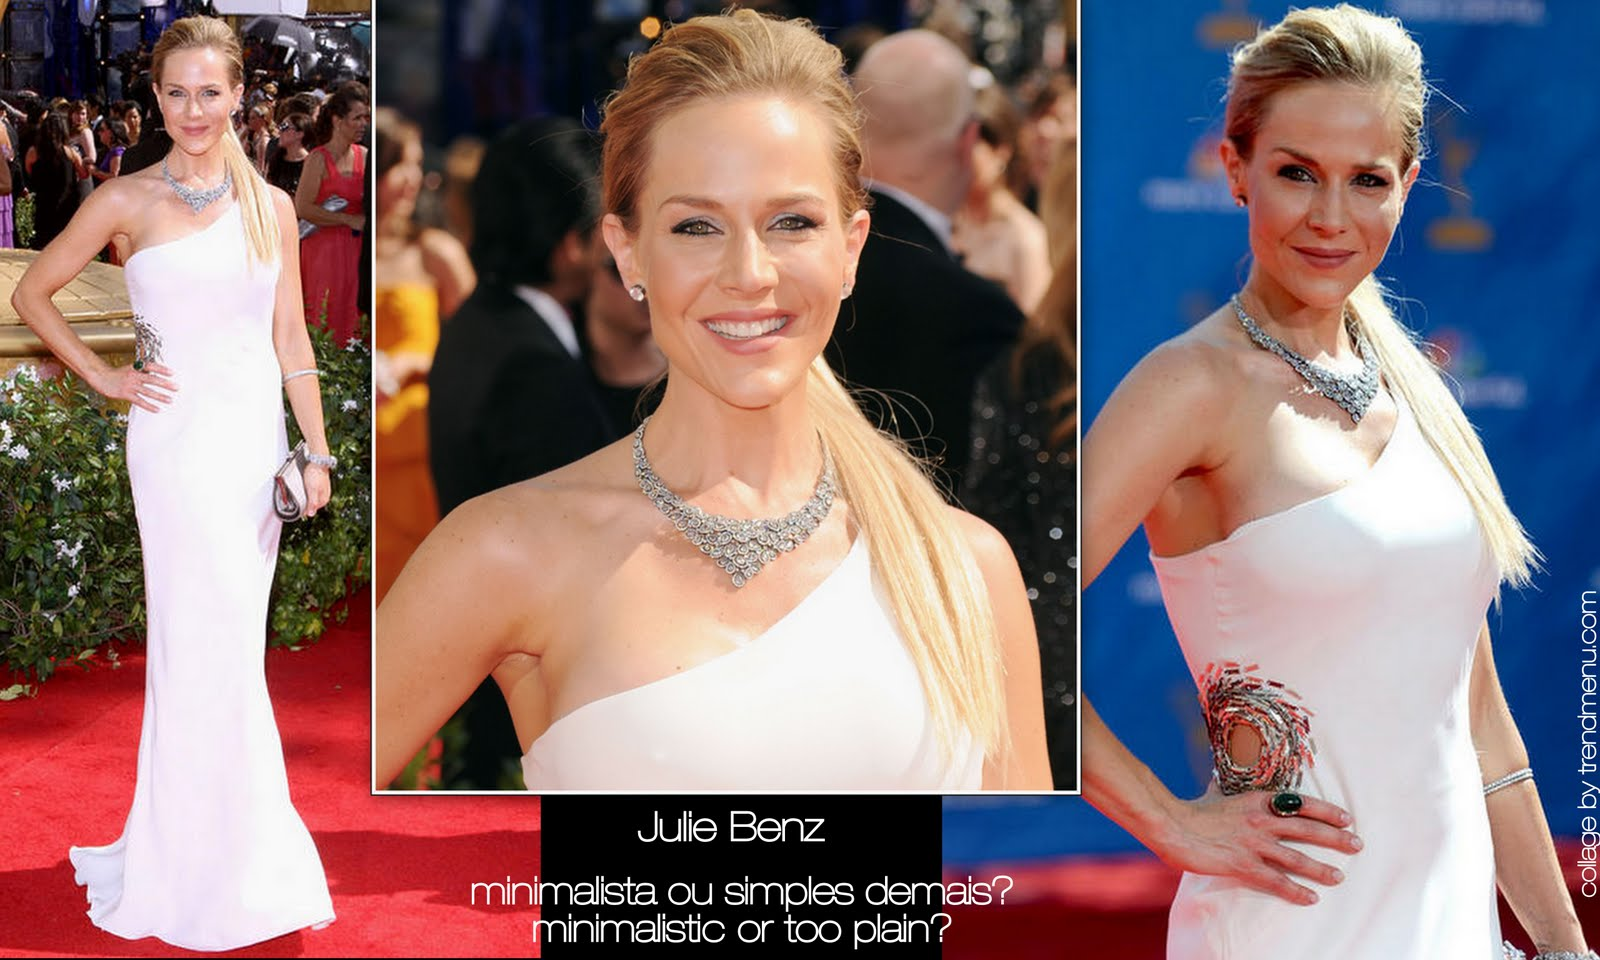 http://4.bp.blogspot.com/_Q5WSg7ukT6Y/THtOA_InbZI/AAAAAAAAEYc/p7mJ1GdHuI8/s1600/julie+benz+62th+emmy+2010+red+carpet.jpg